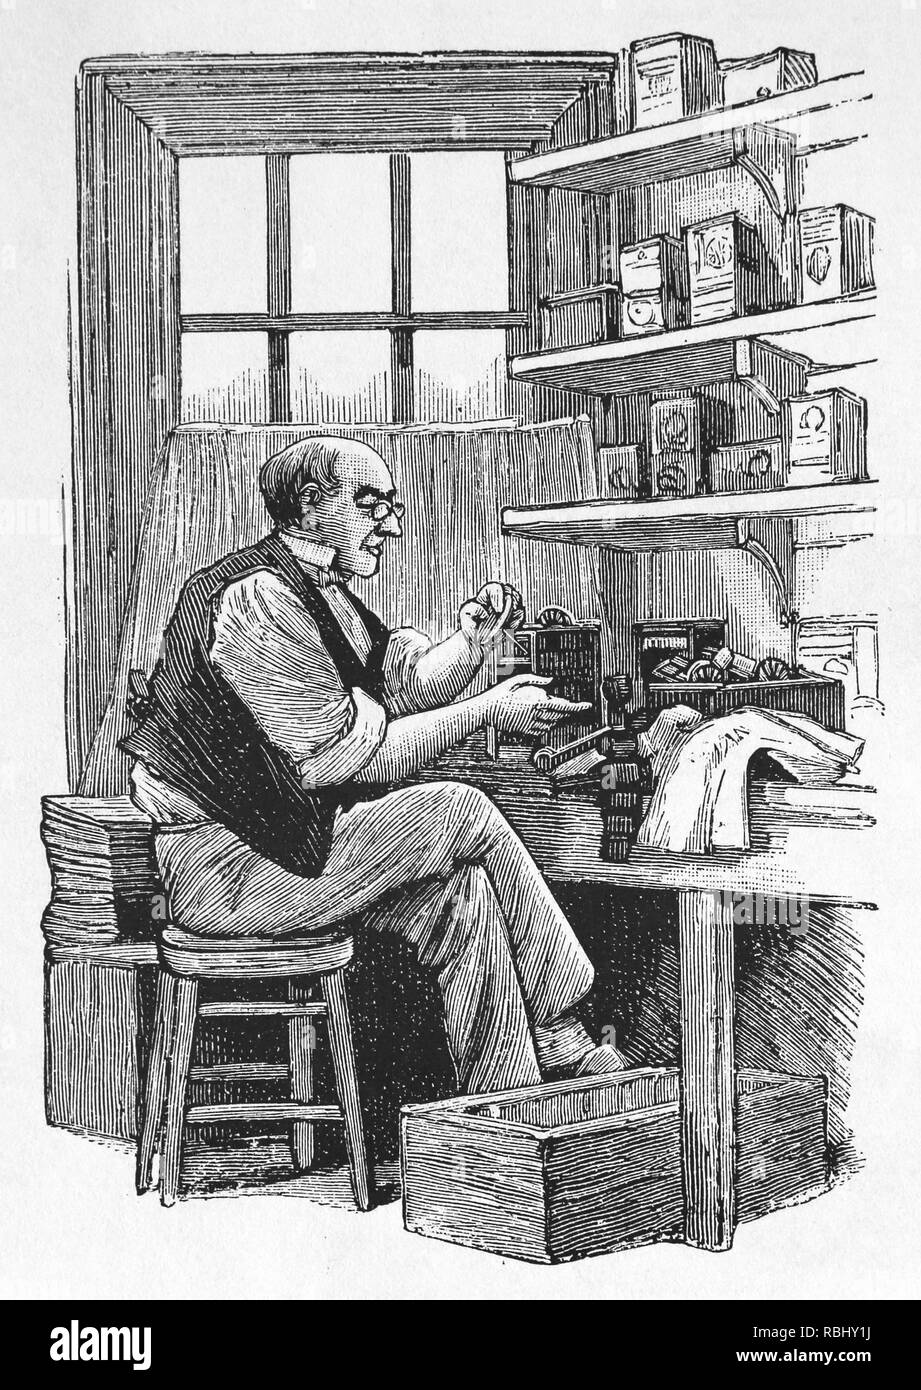 Artisan in his workshop. Engraving. 19th century. - Stock Image